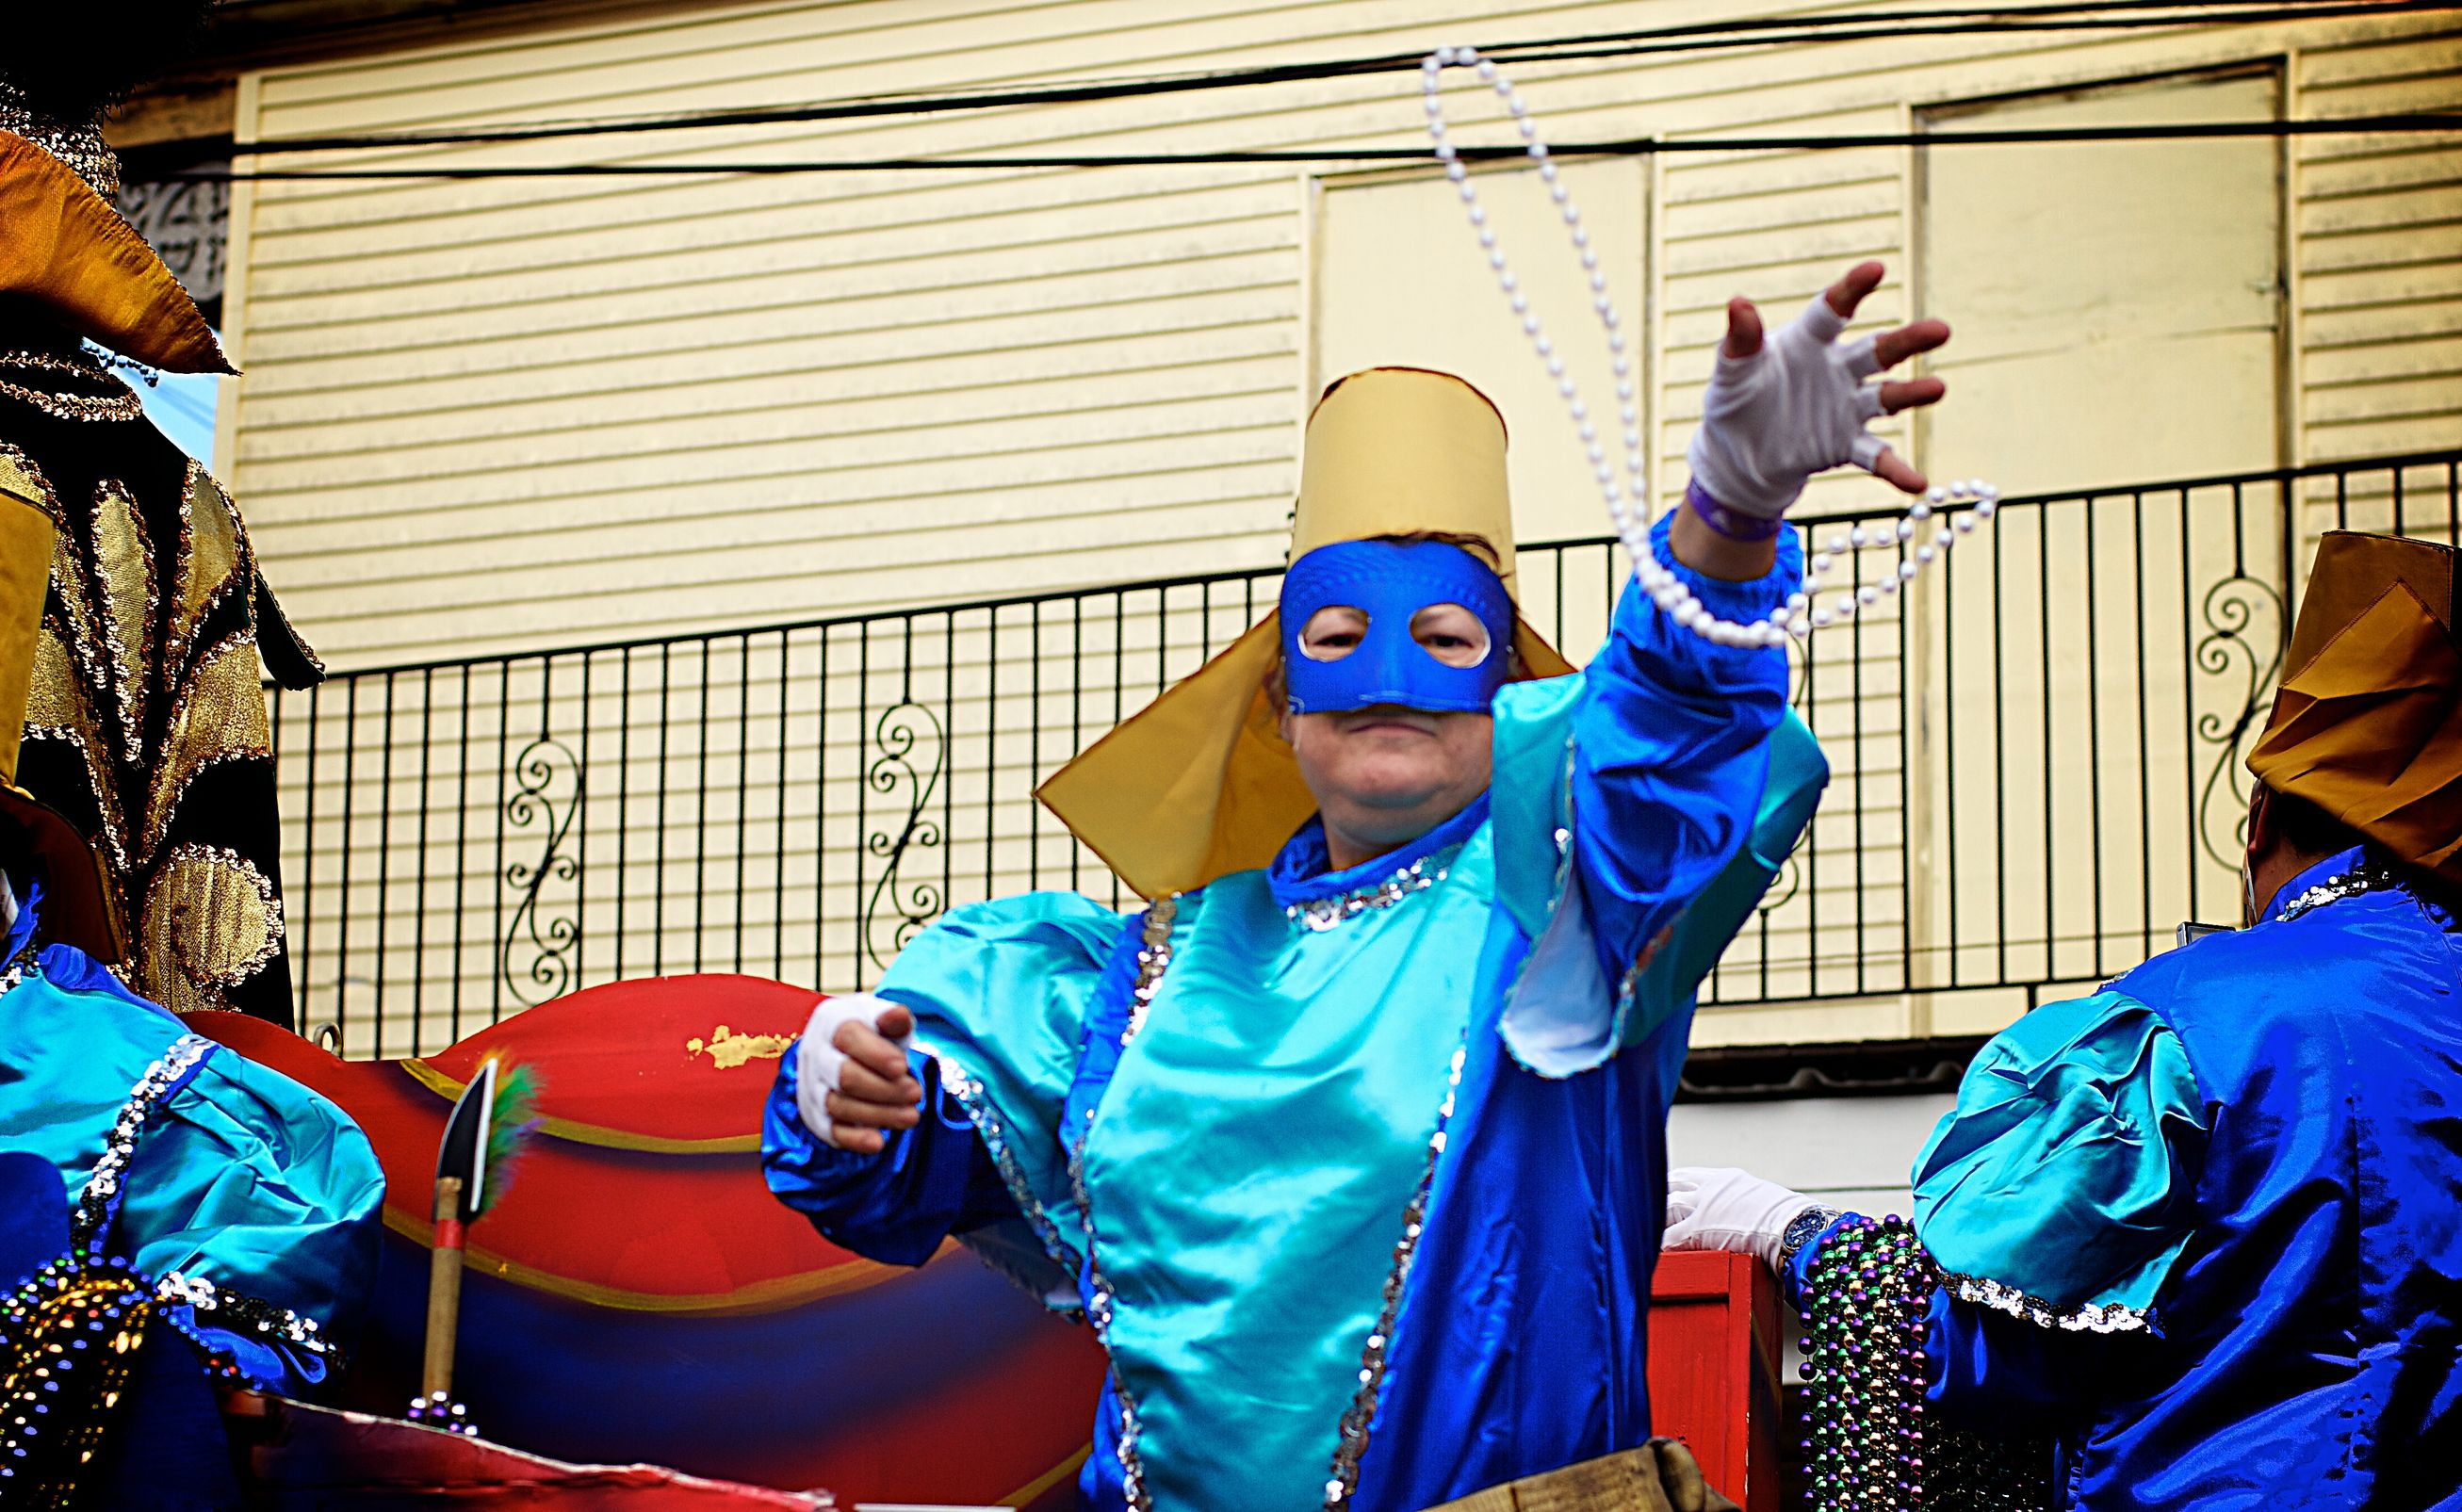 New Orleans Mardi Gras New Orleans Louisiana World